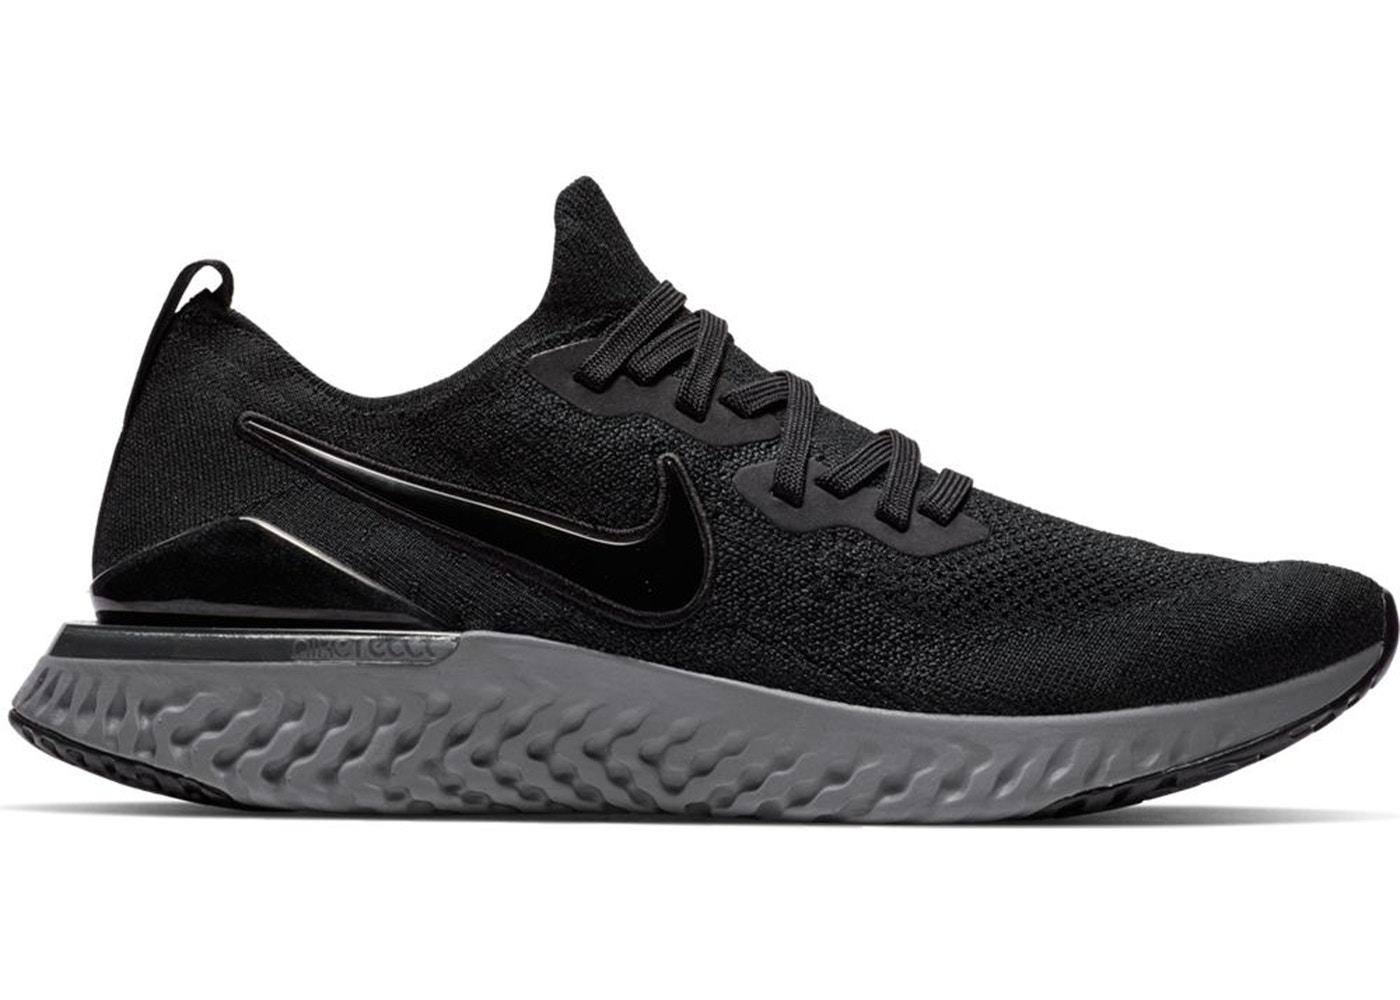 9ab8f19eb88 Sell. or Ask. Size: 13. View All Bids. Nike Epic React Flyknit 2 Black  Anthracite